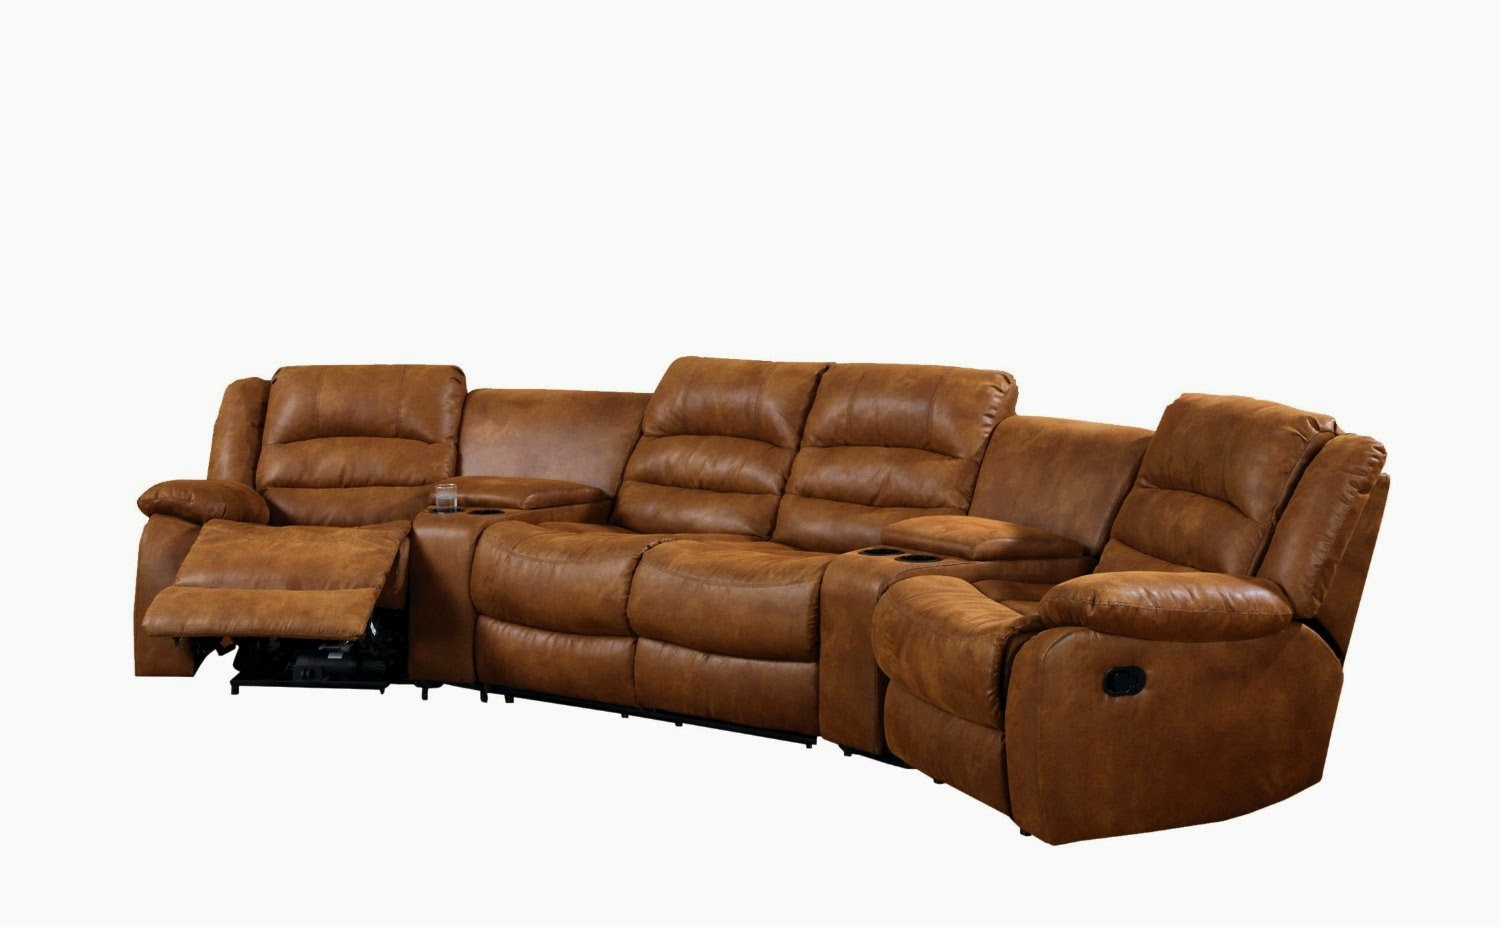 Recliner Sofa Set 3 2 1 Used Bed For Sale In Abu Dhabi Cheap Reclining Sofas Brown